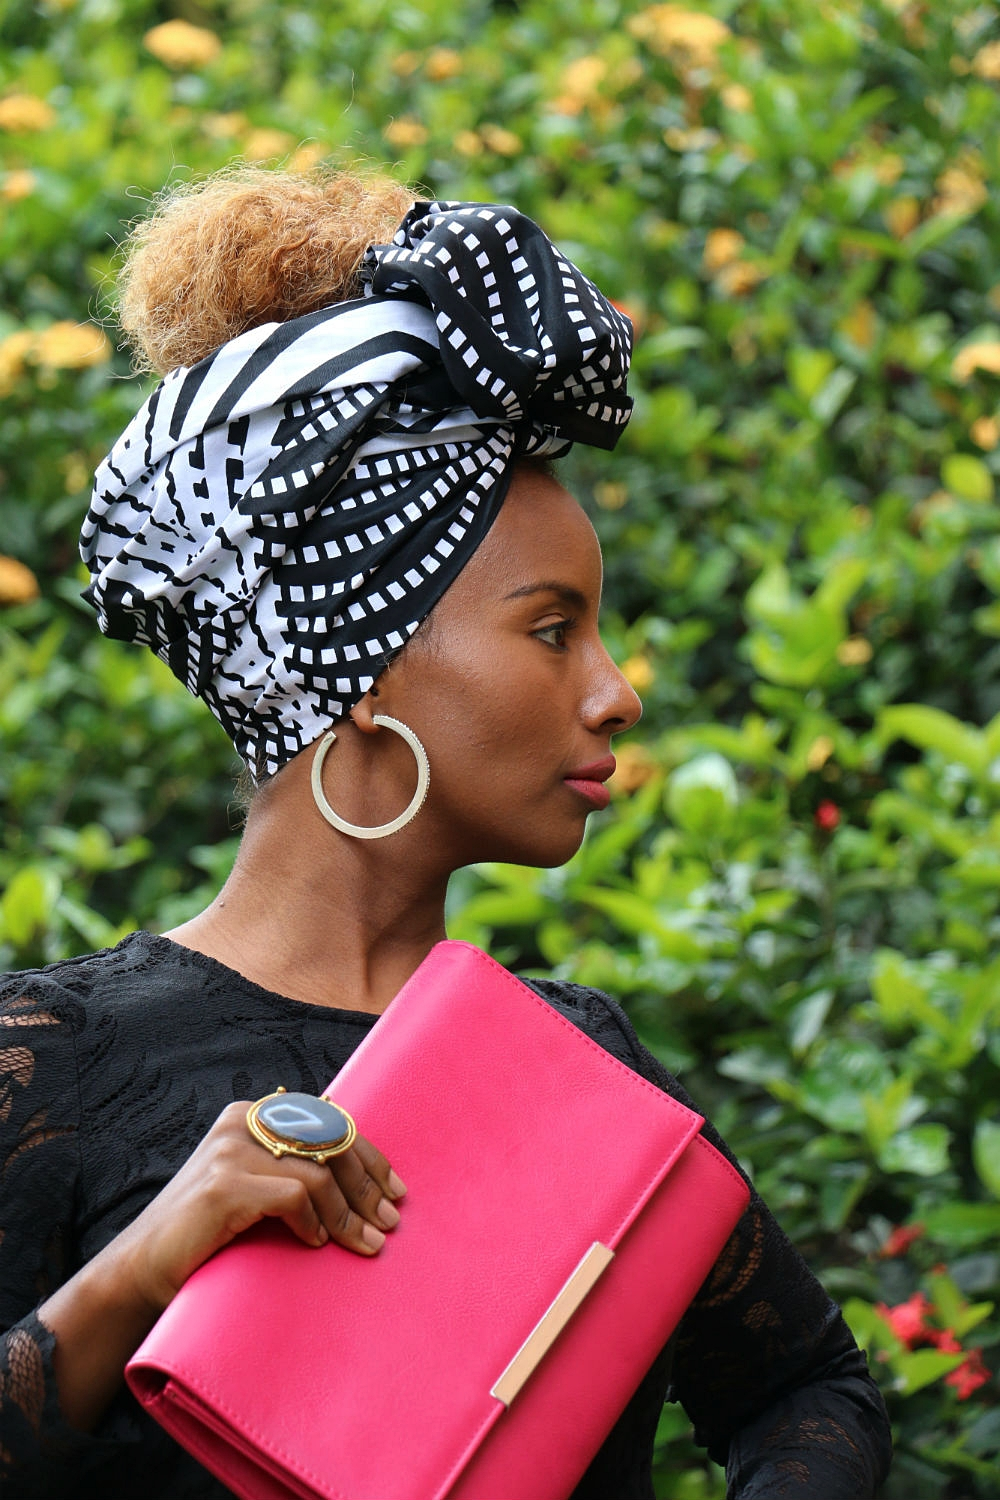 We chose a bright pink leather clutch, silver hoops and a semi-precious stone ring as accessories to compliment  headwrap GUGU.